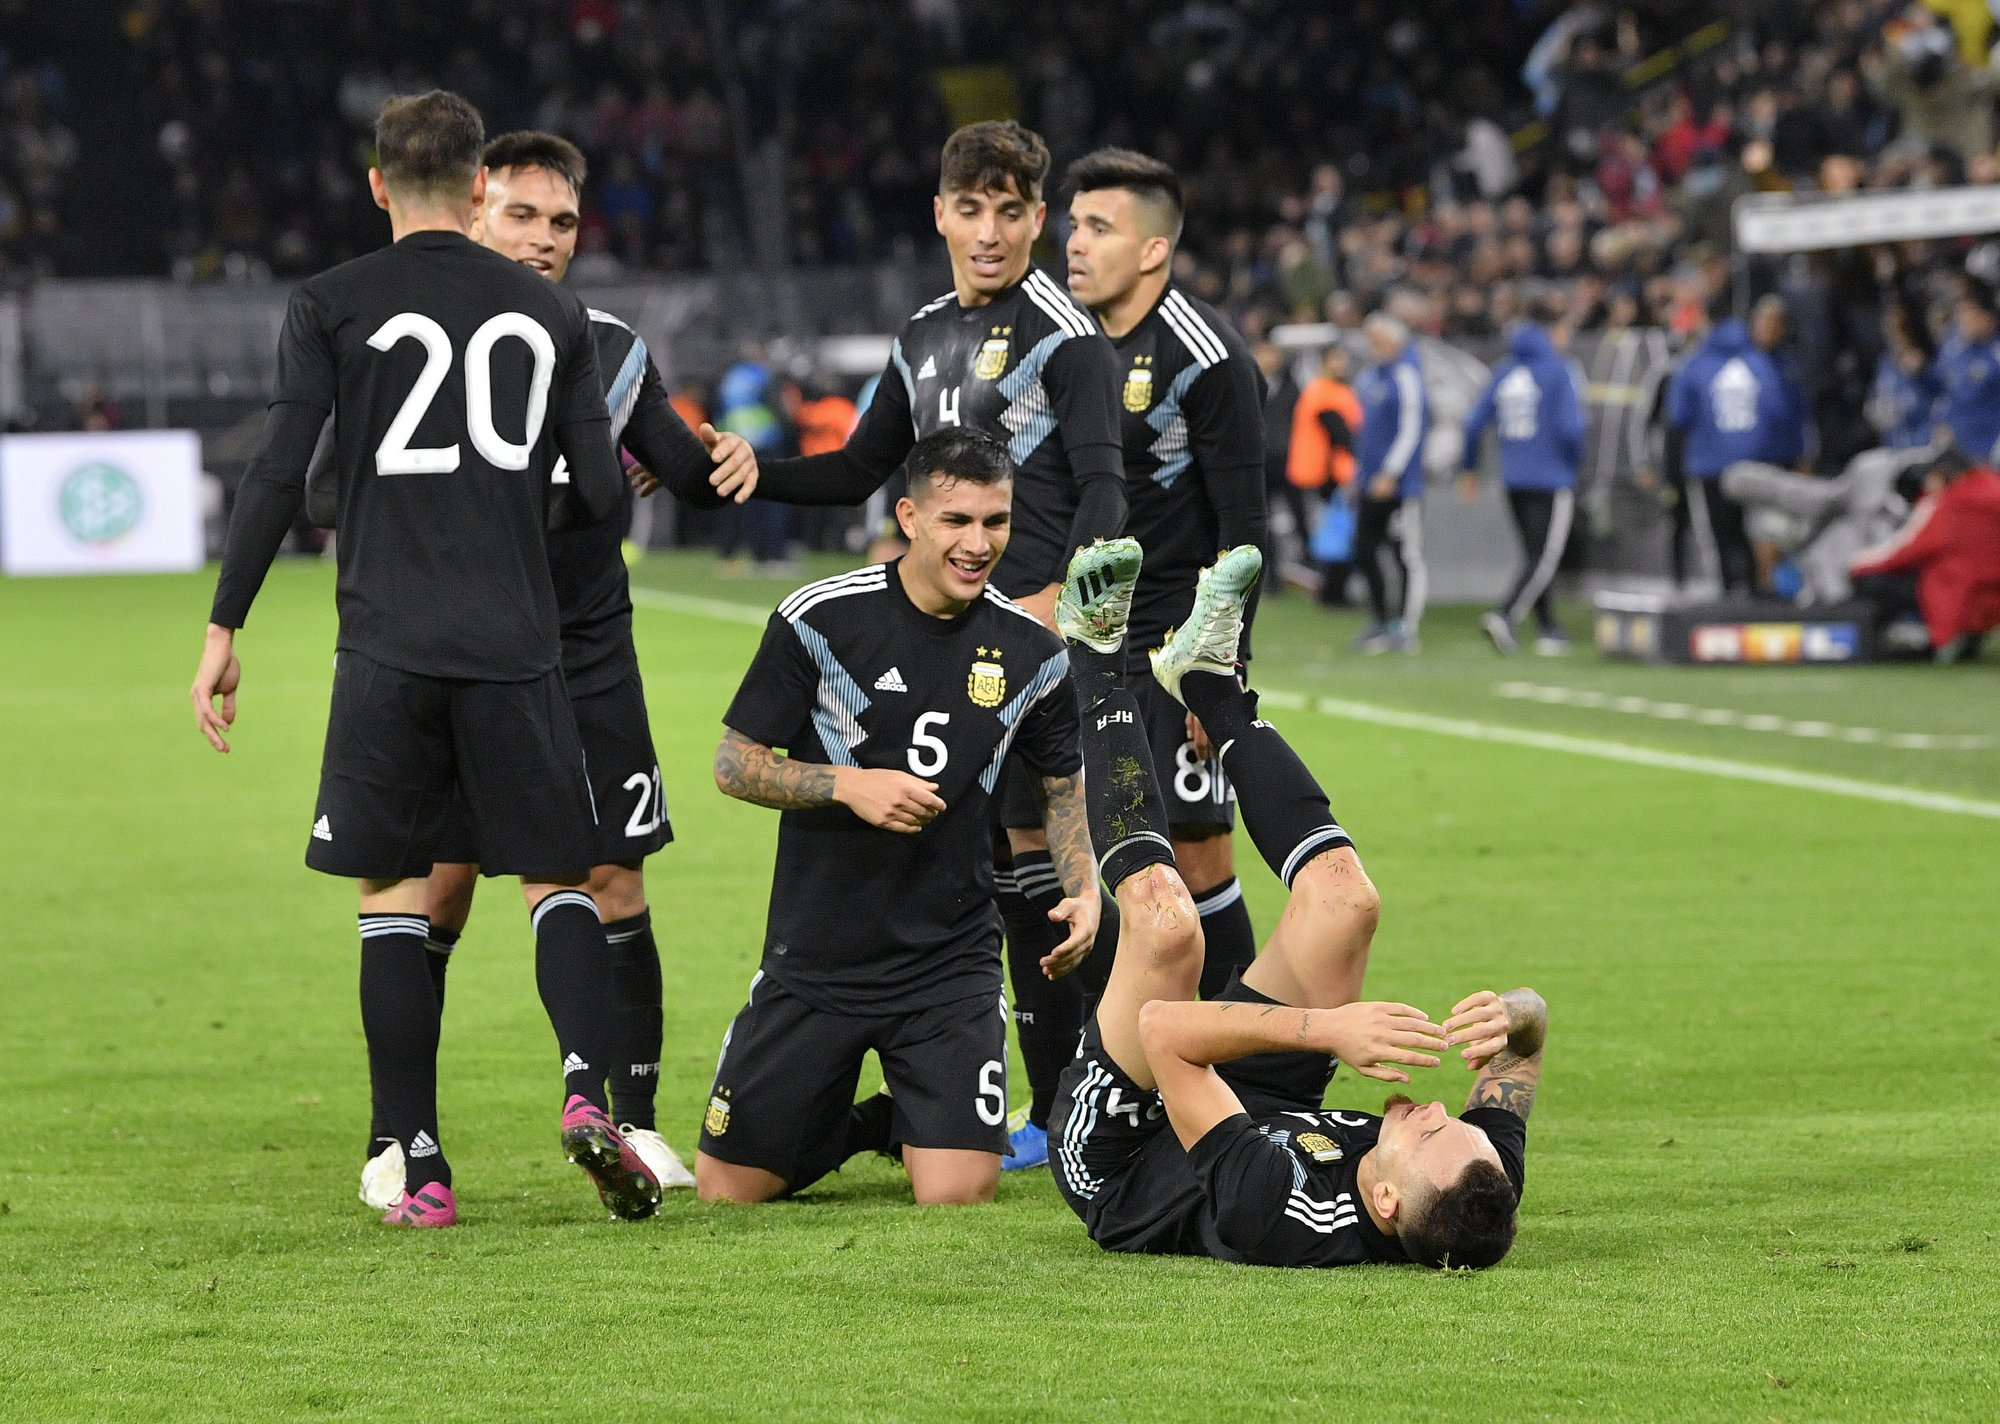 Argentina rallies to draw 2-2 against Germany in friendly